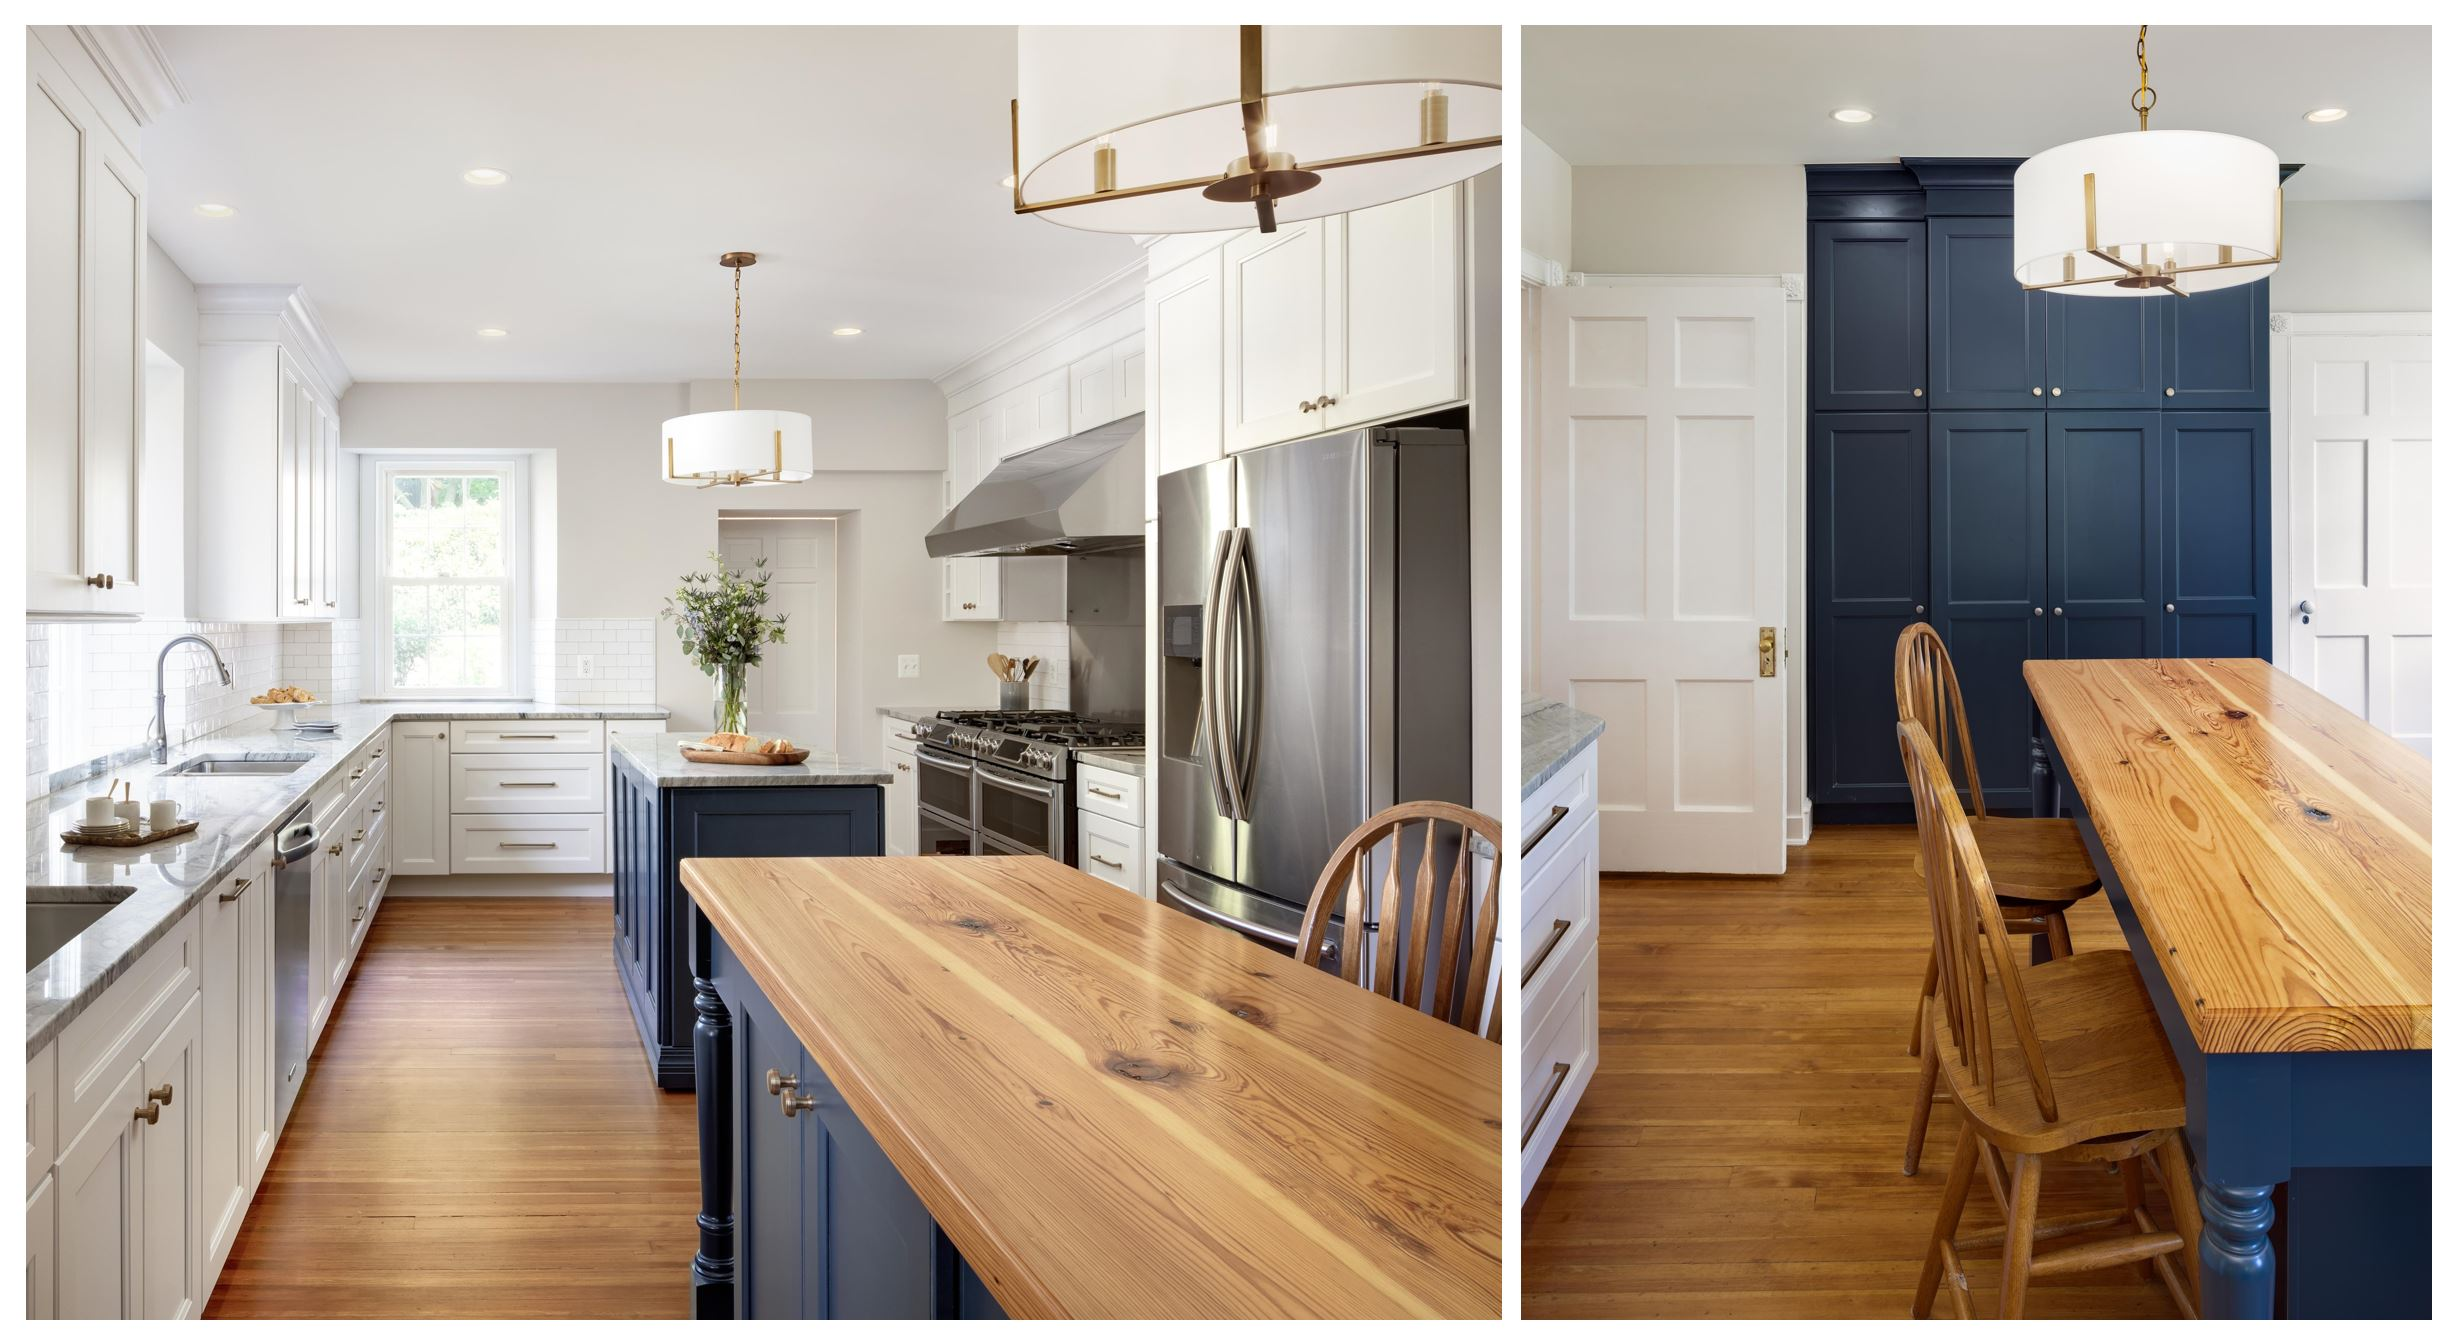 Collage of navy, white, and wooden detailed kitchen remodeling project